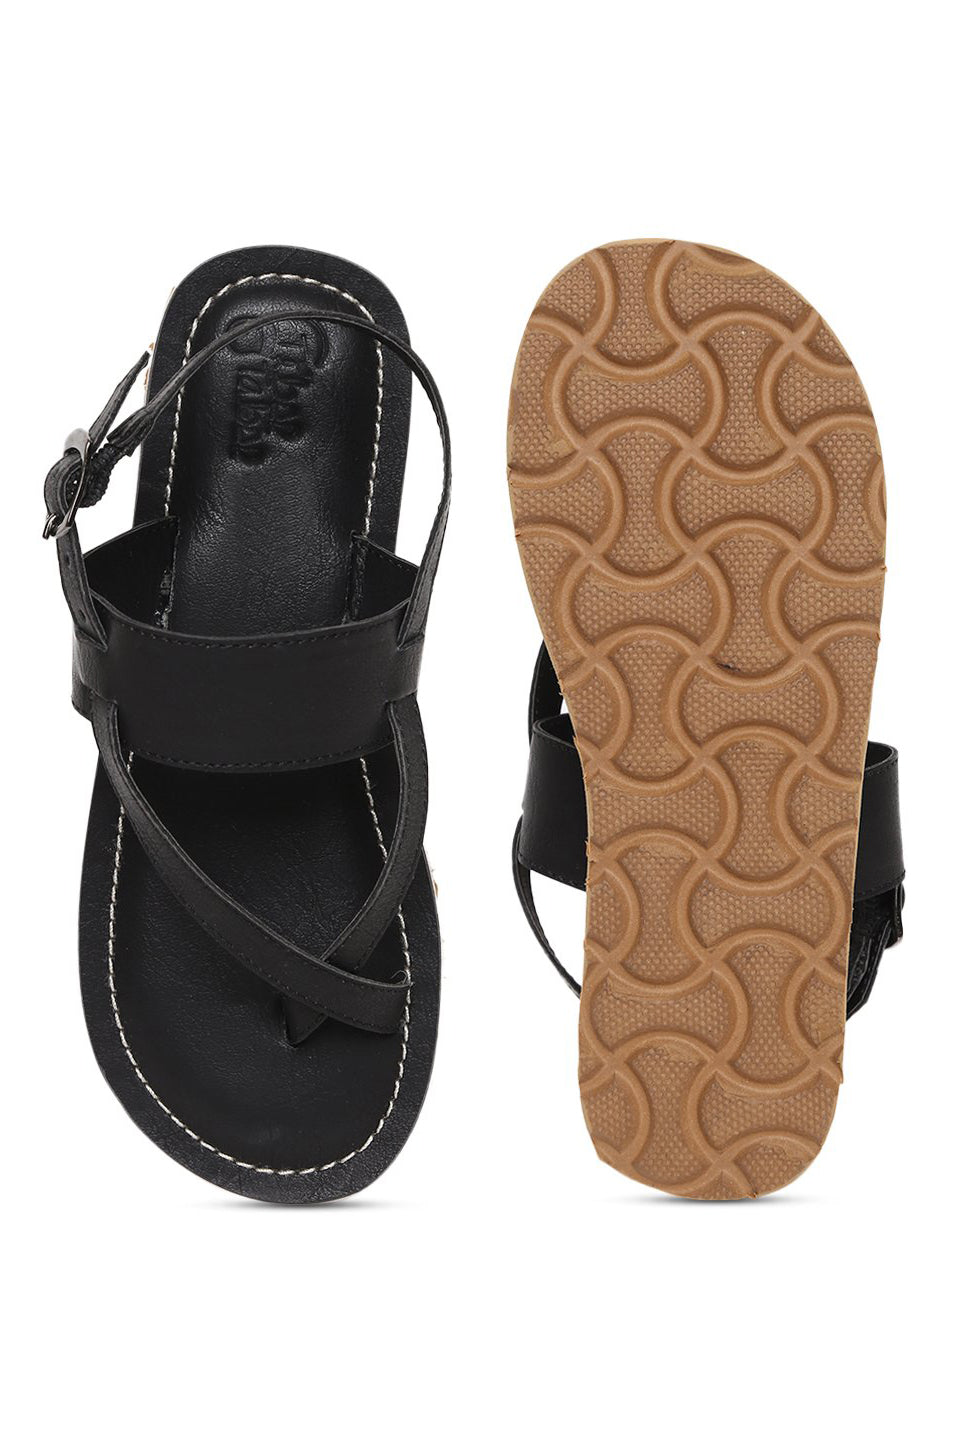 Boys Black Nawab Sandal